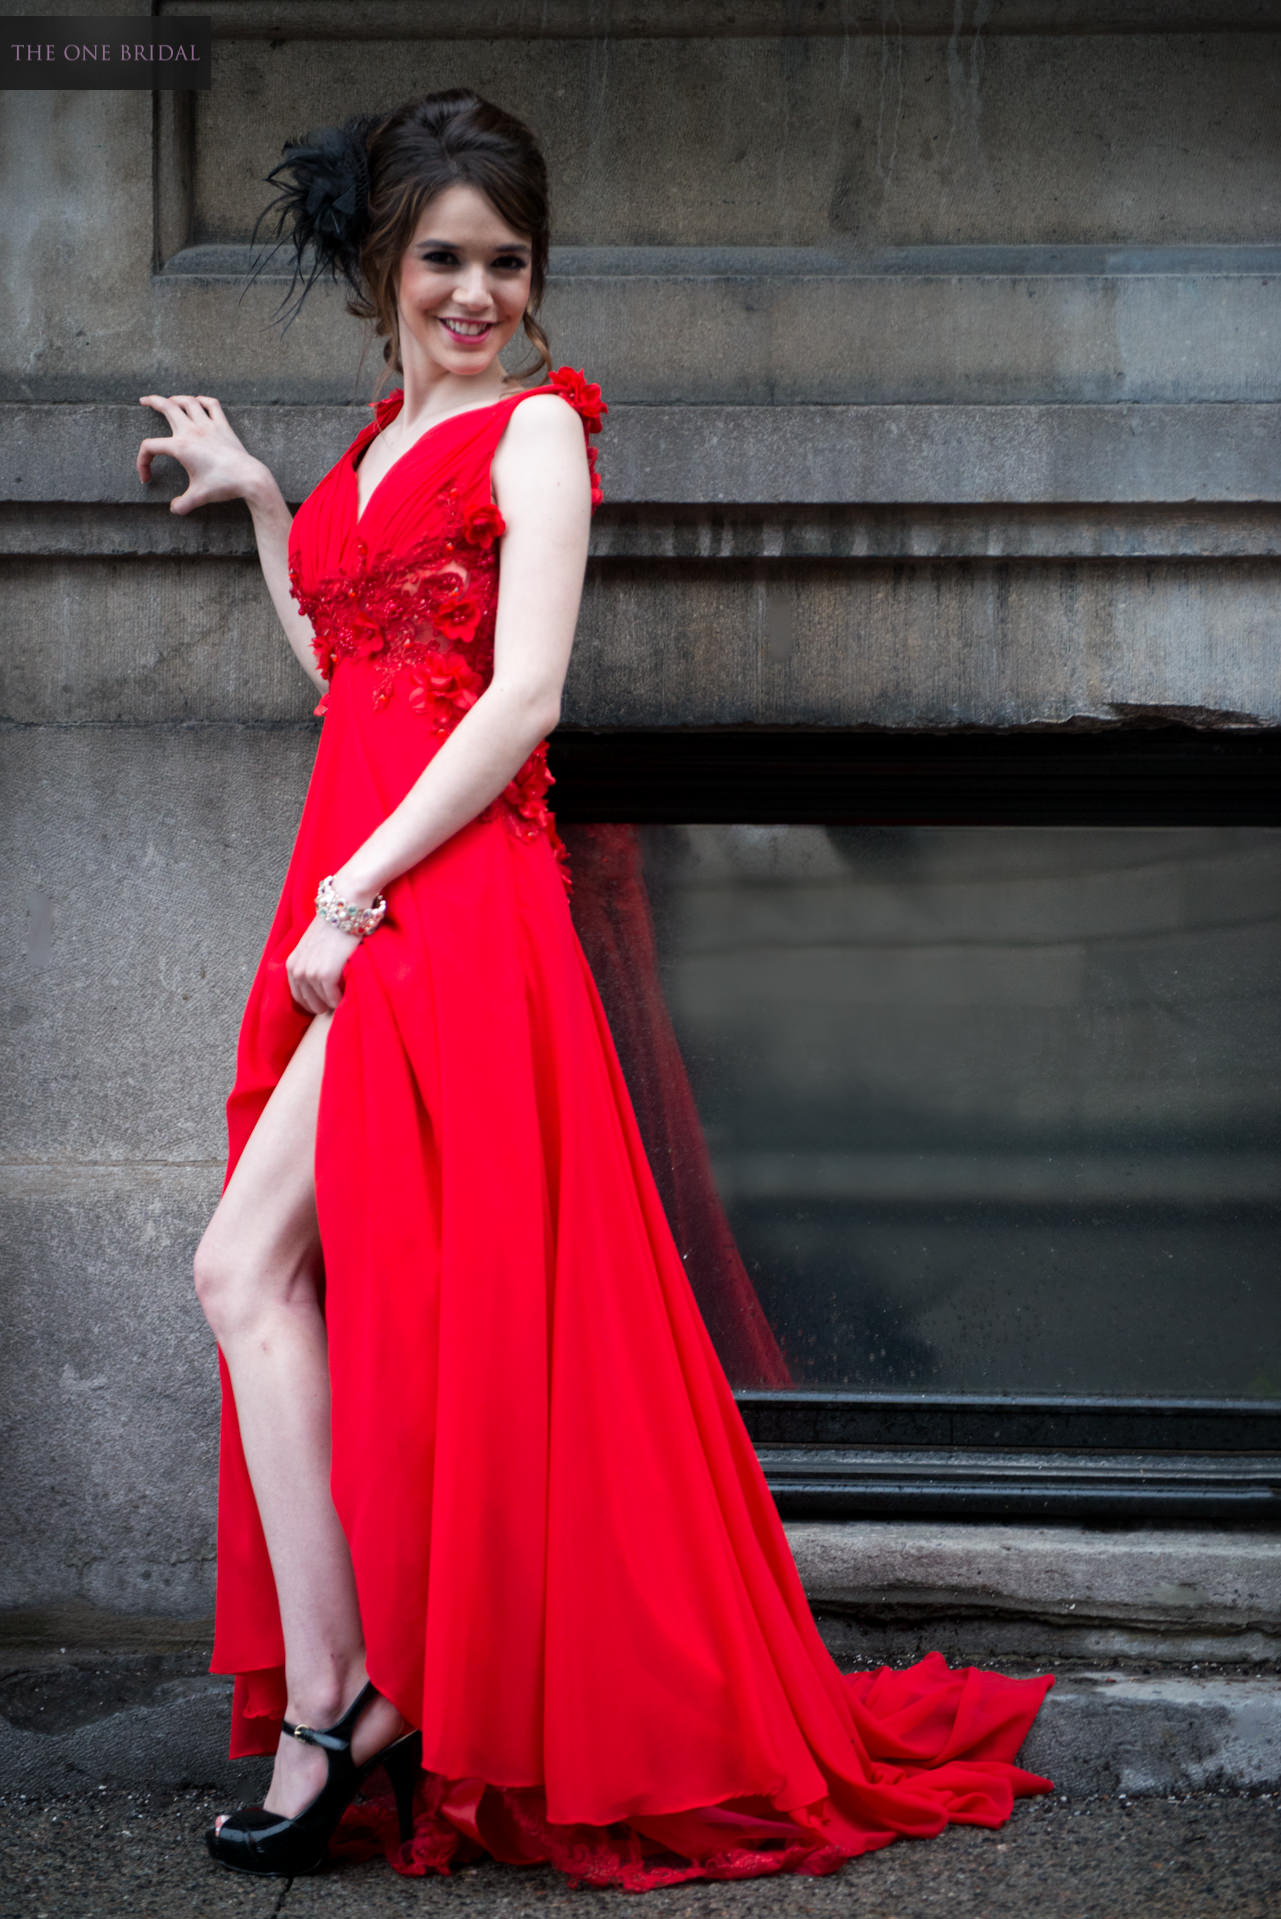 the-one-bridal-evening-dress-montreal-04